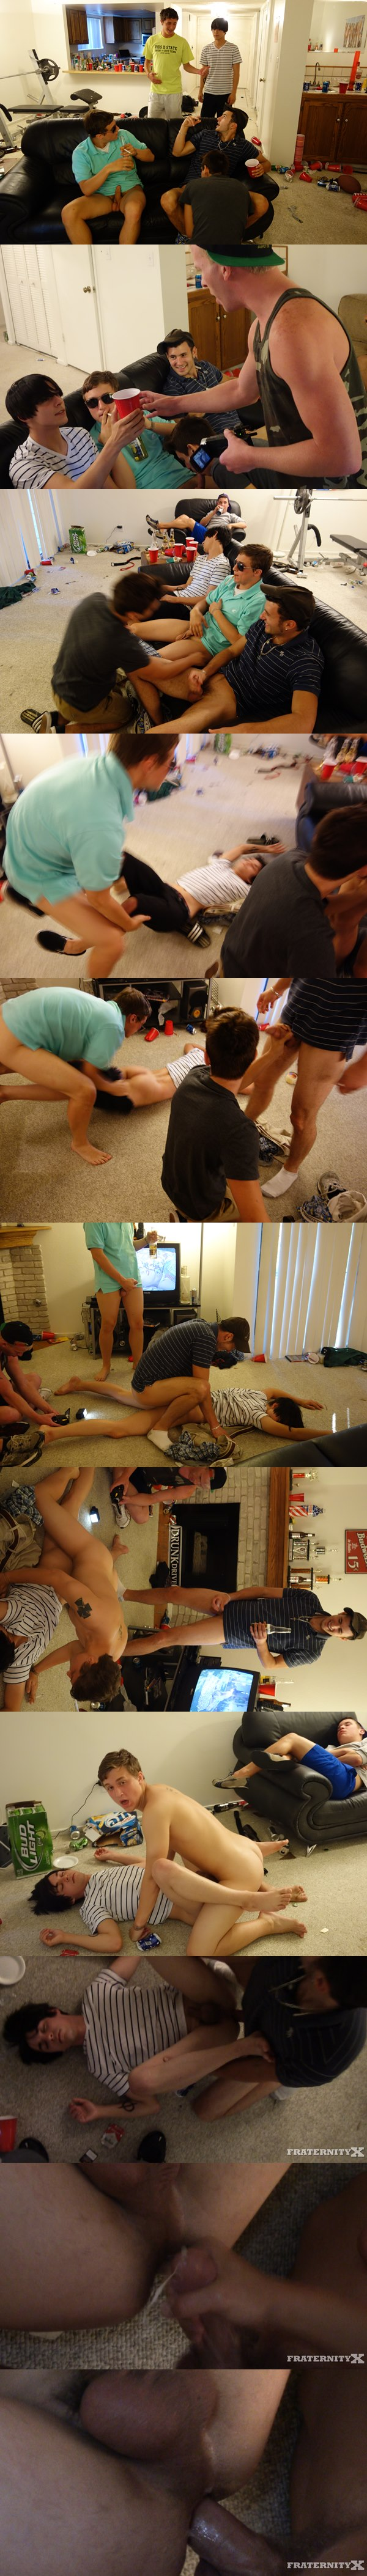 Cute freshman gets gangbang barebacked and bred by big-dicked college dudes in Pretty Boy Pt. 1 at Fraternityx 02